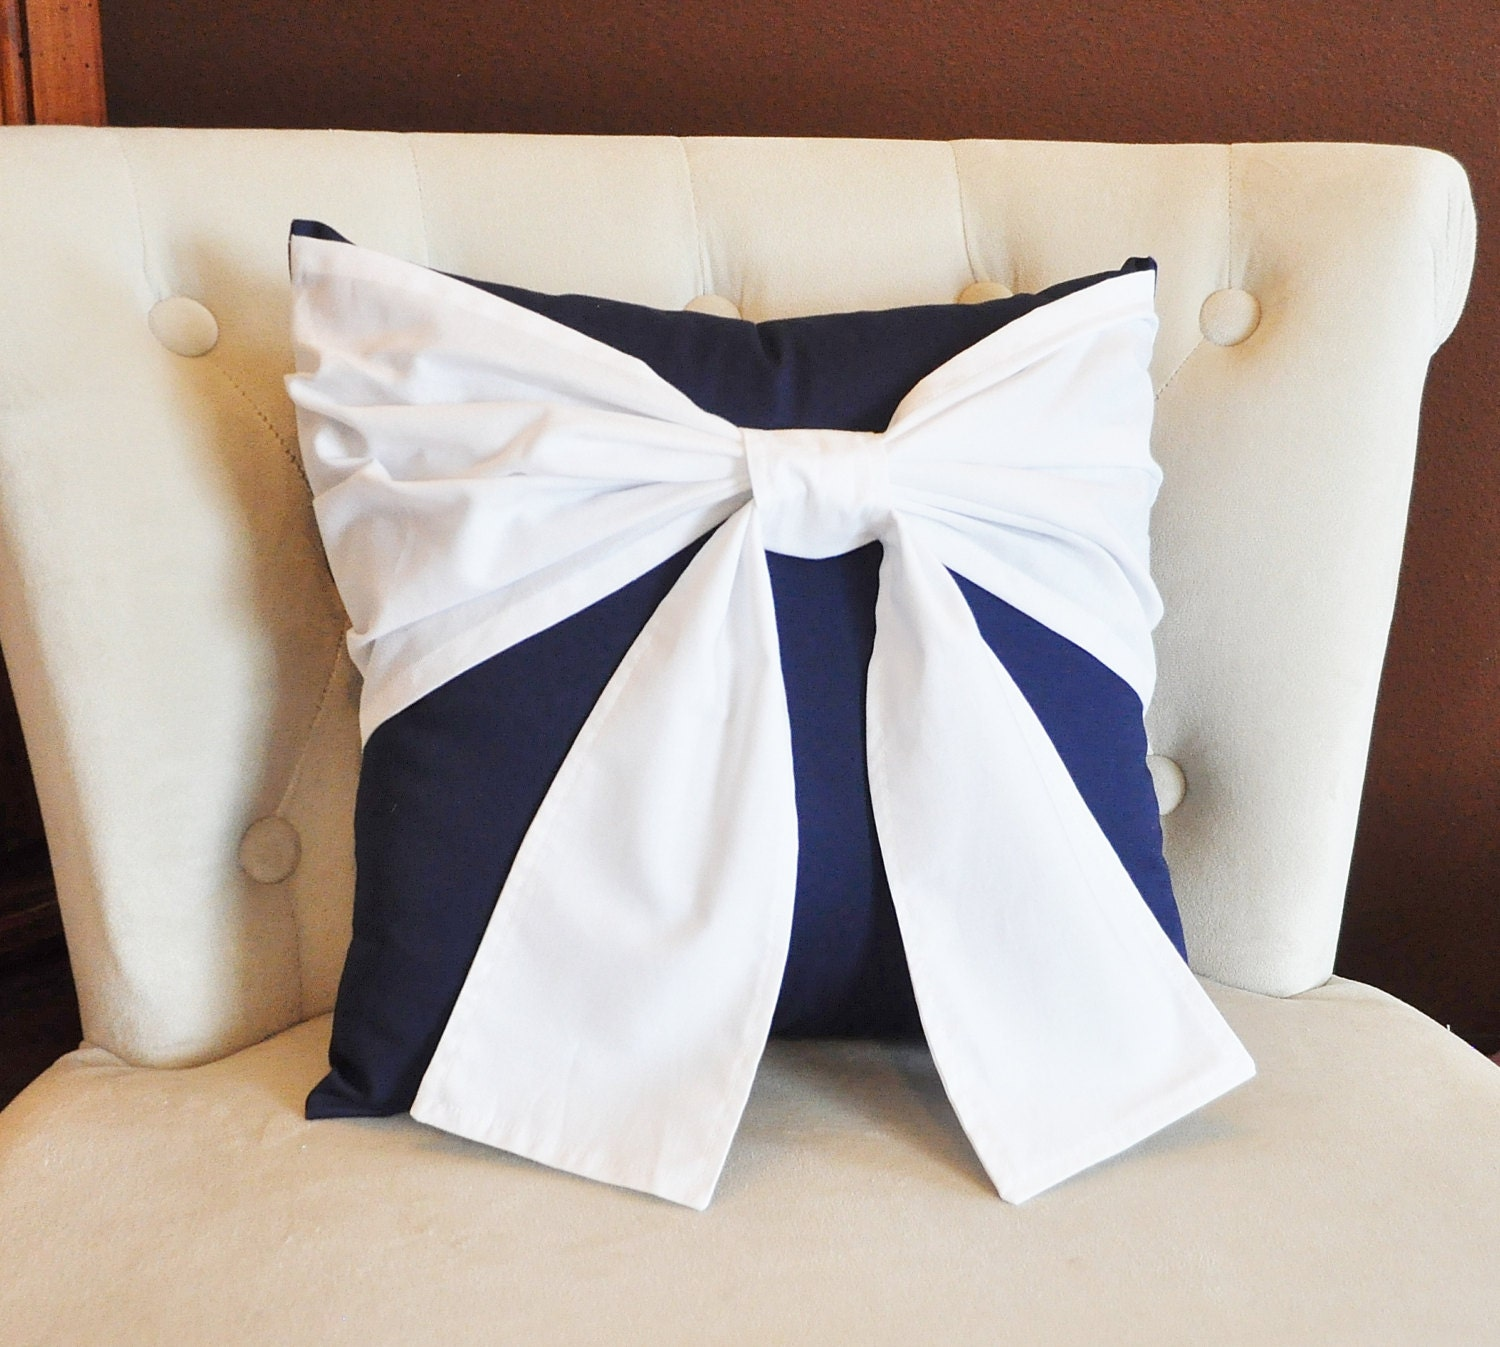 Throw Pillow White Bow on Navy Pillow 14x14 Navy and White